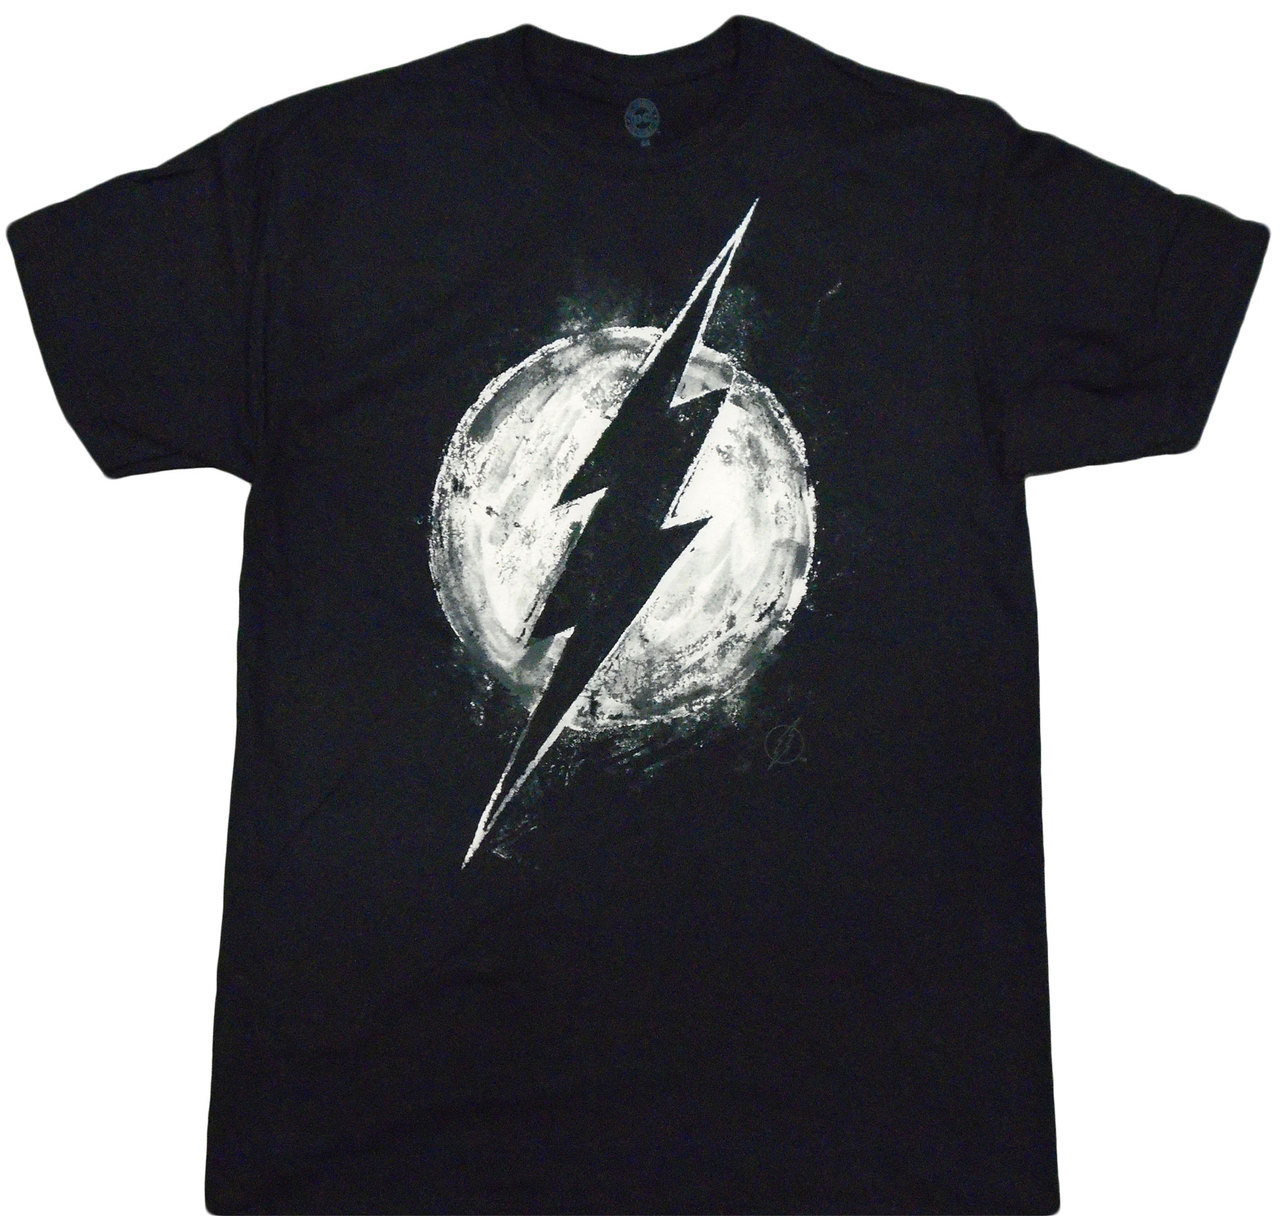 T-Shirt Flash Distress Black S DC Comics